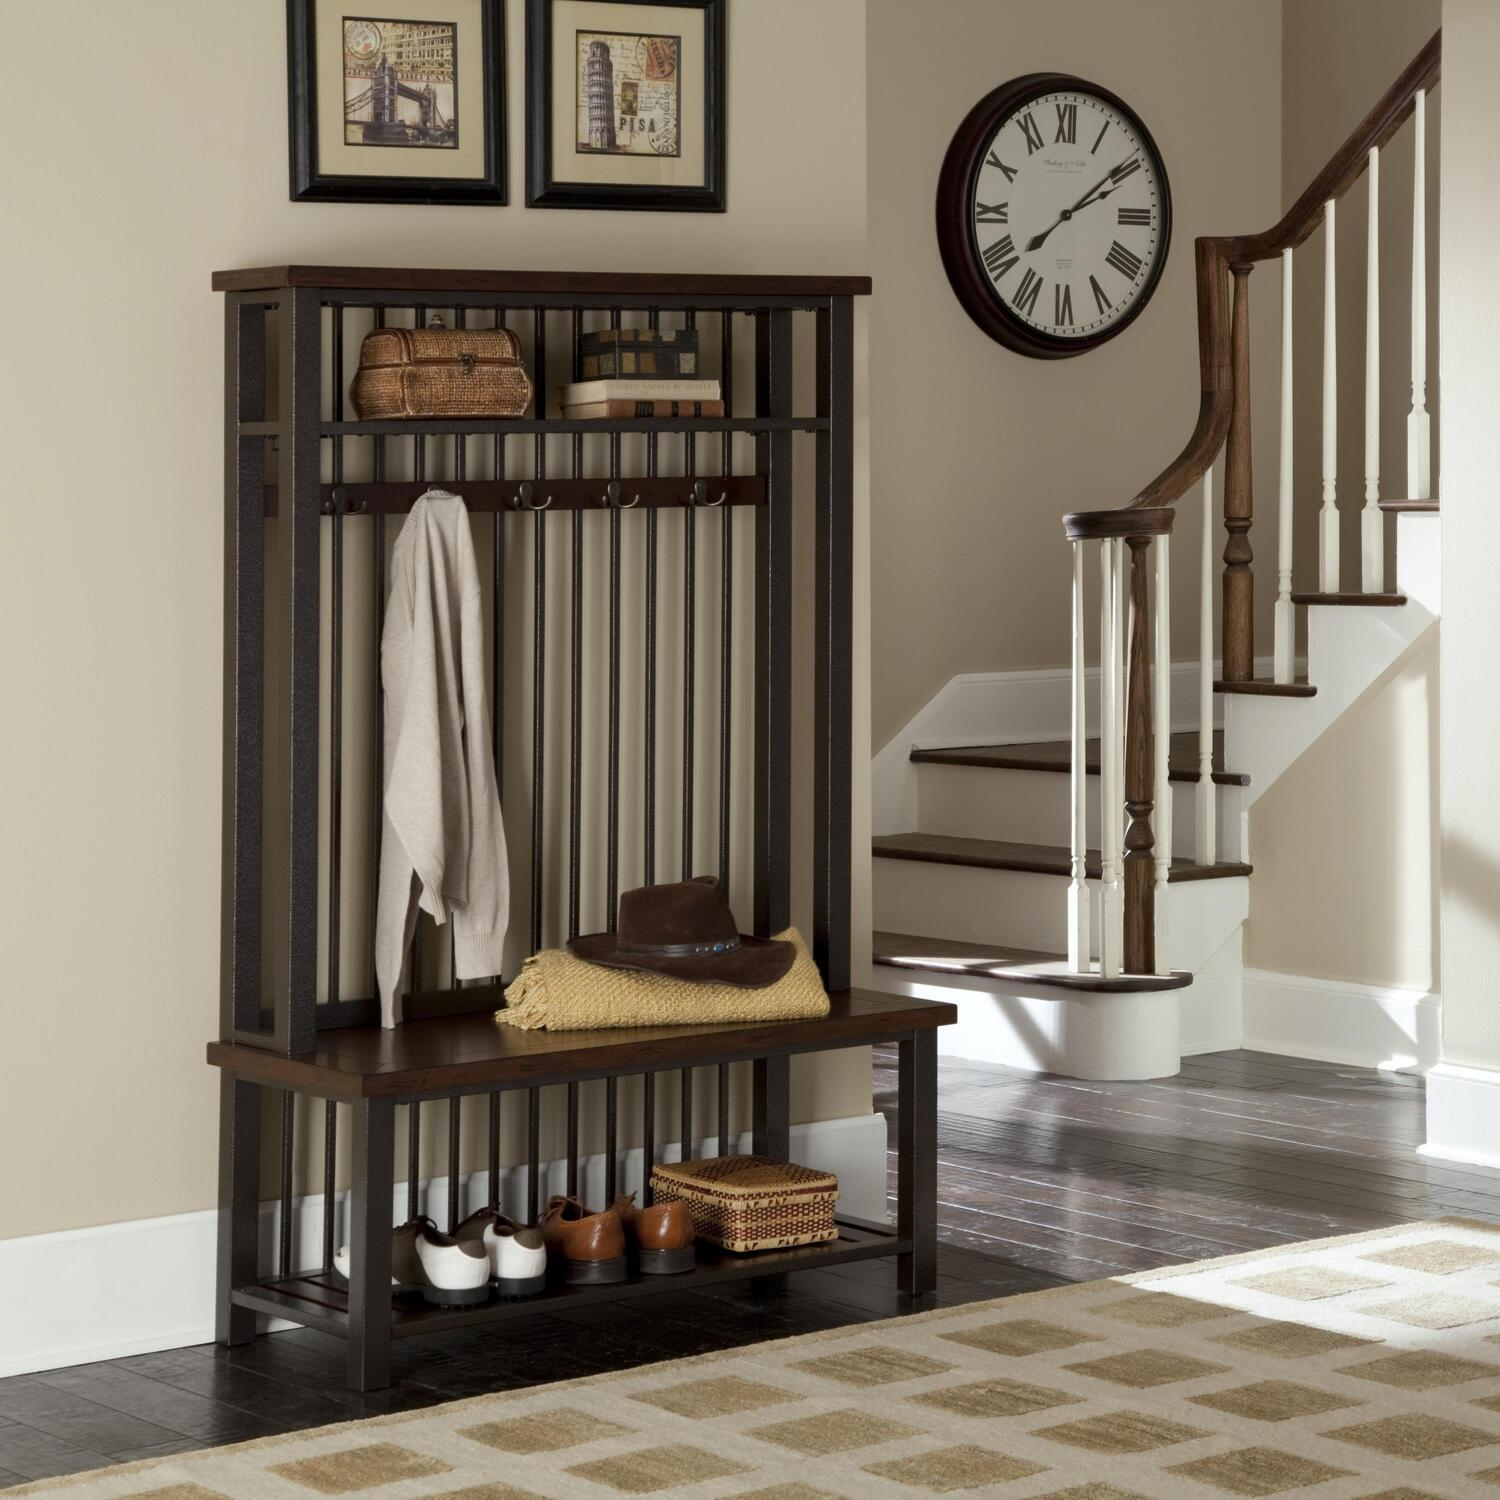 Canadian Home Decor Stores